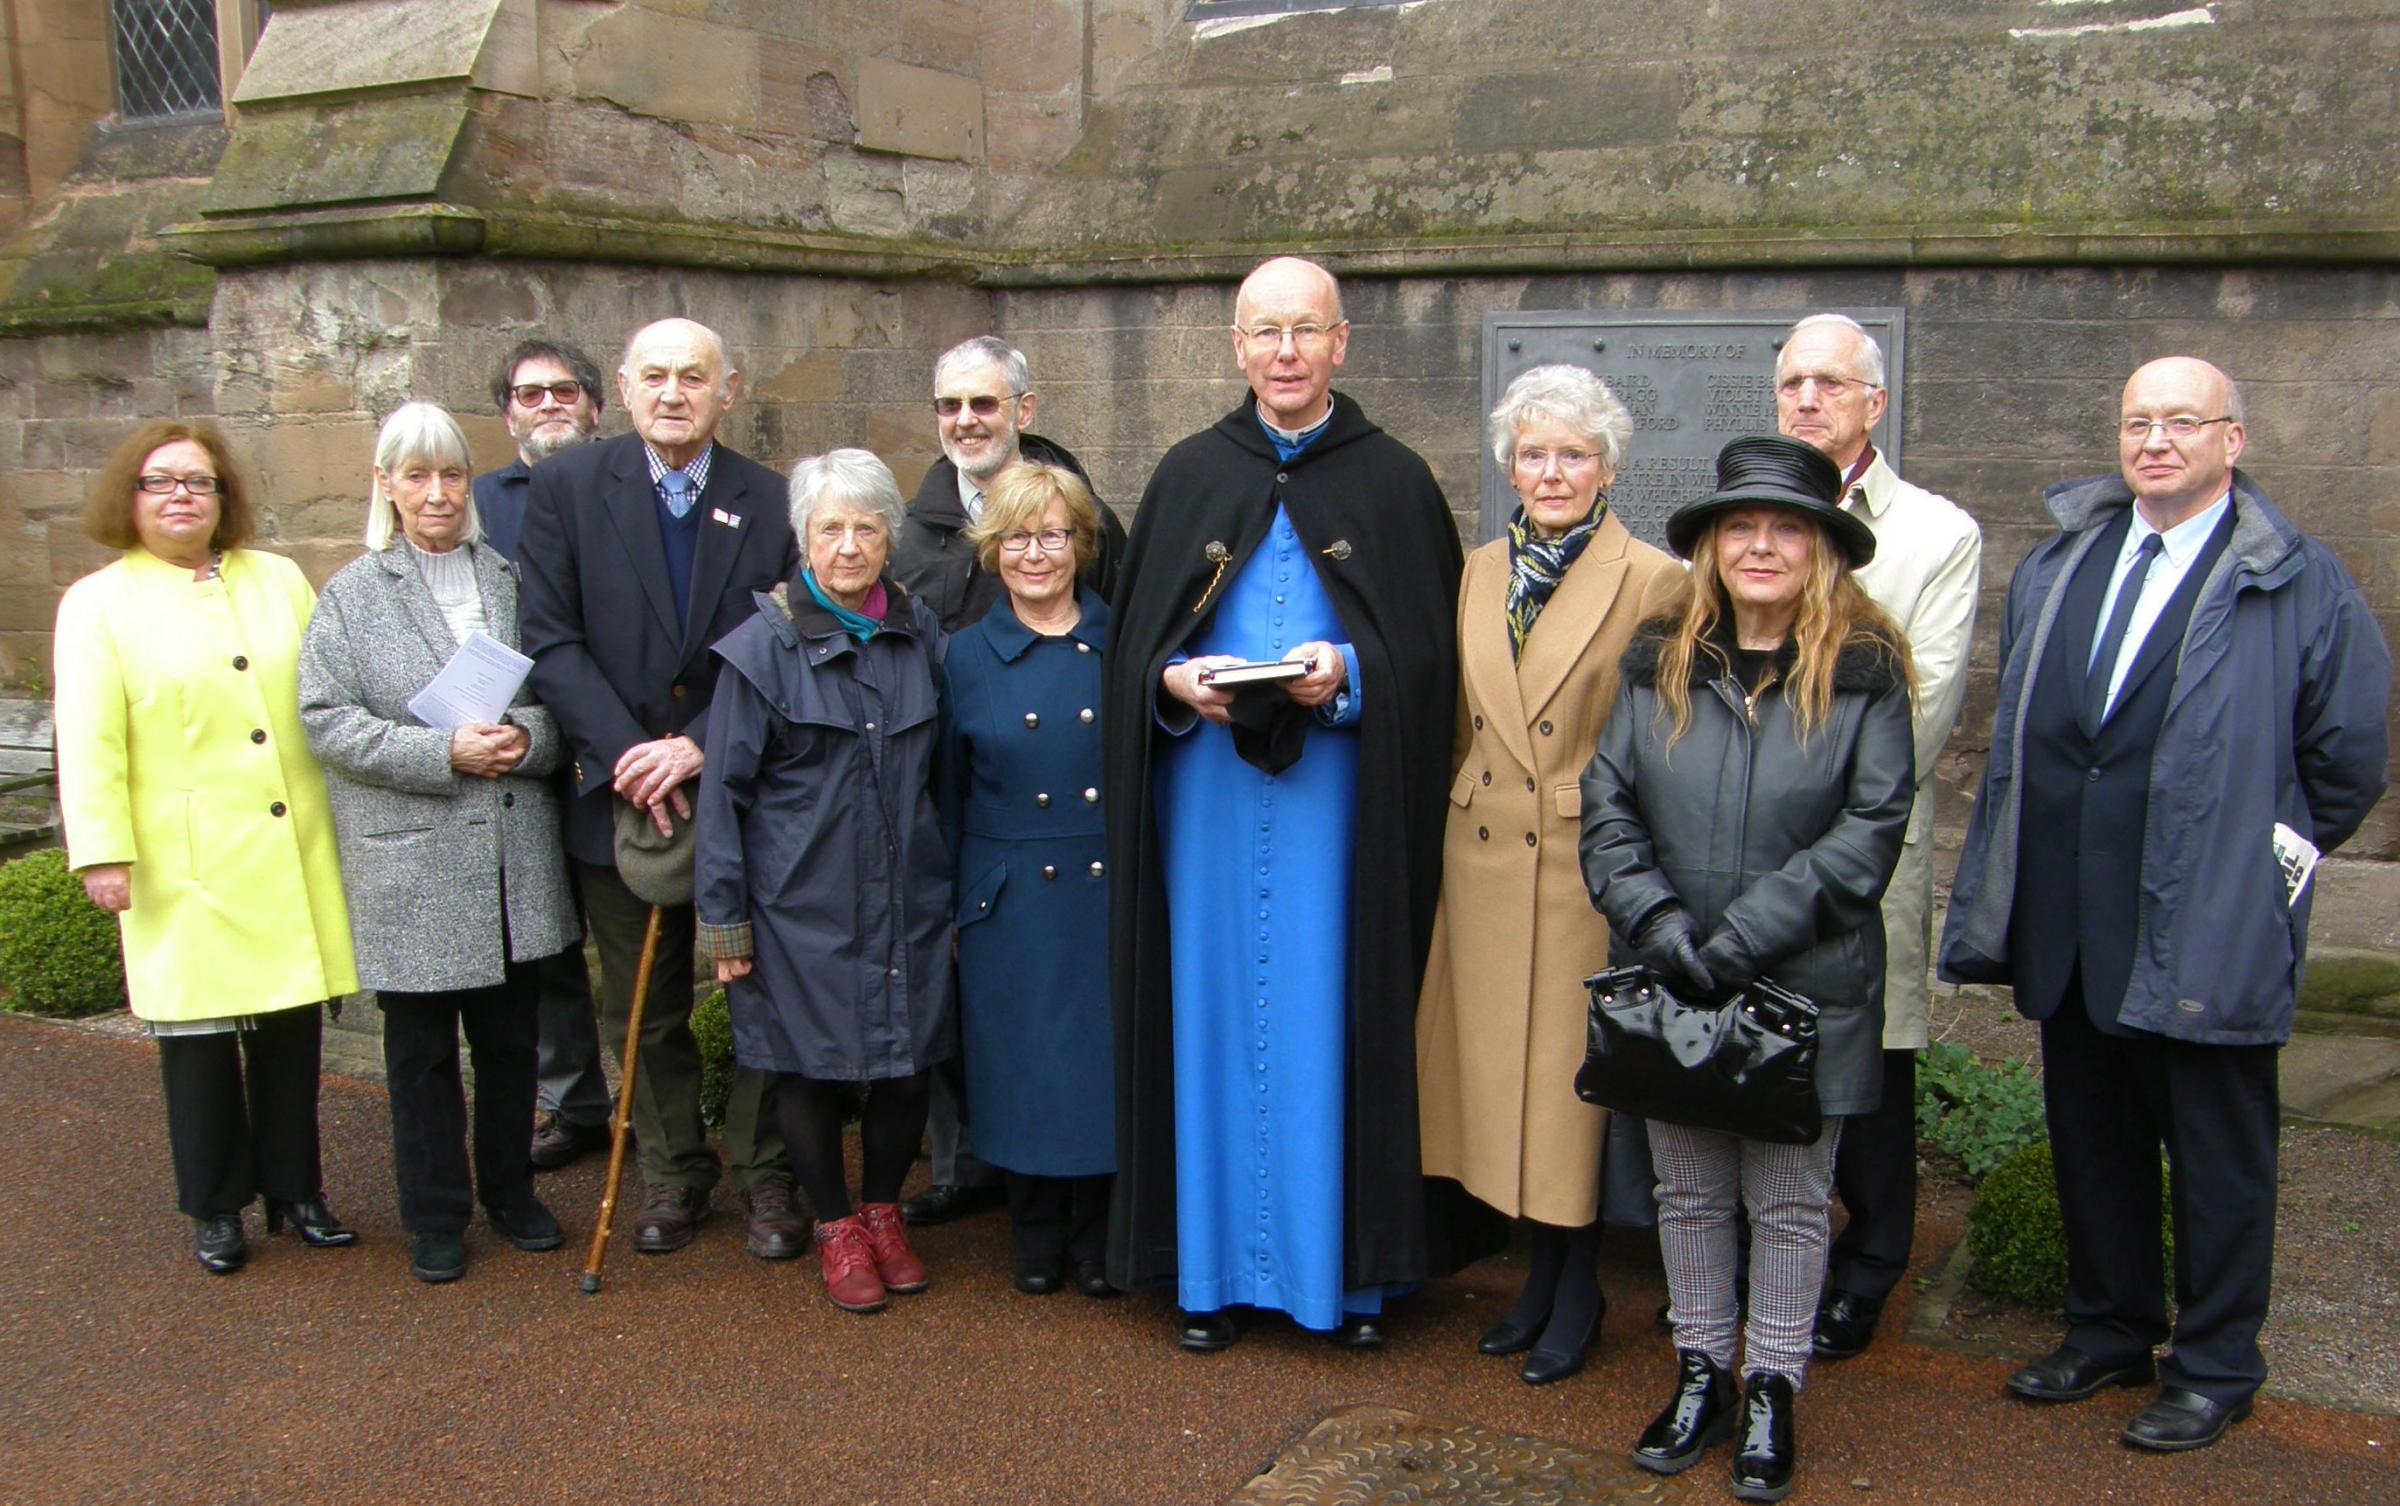 Family members of the children with the Dean of Hereford. Photo: Hereford Cathedral